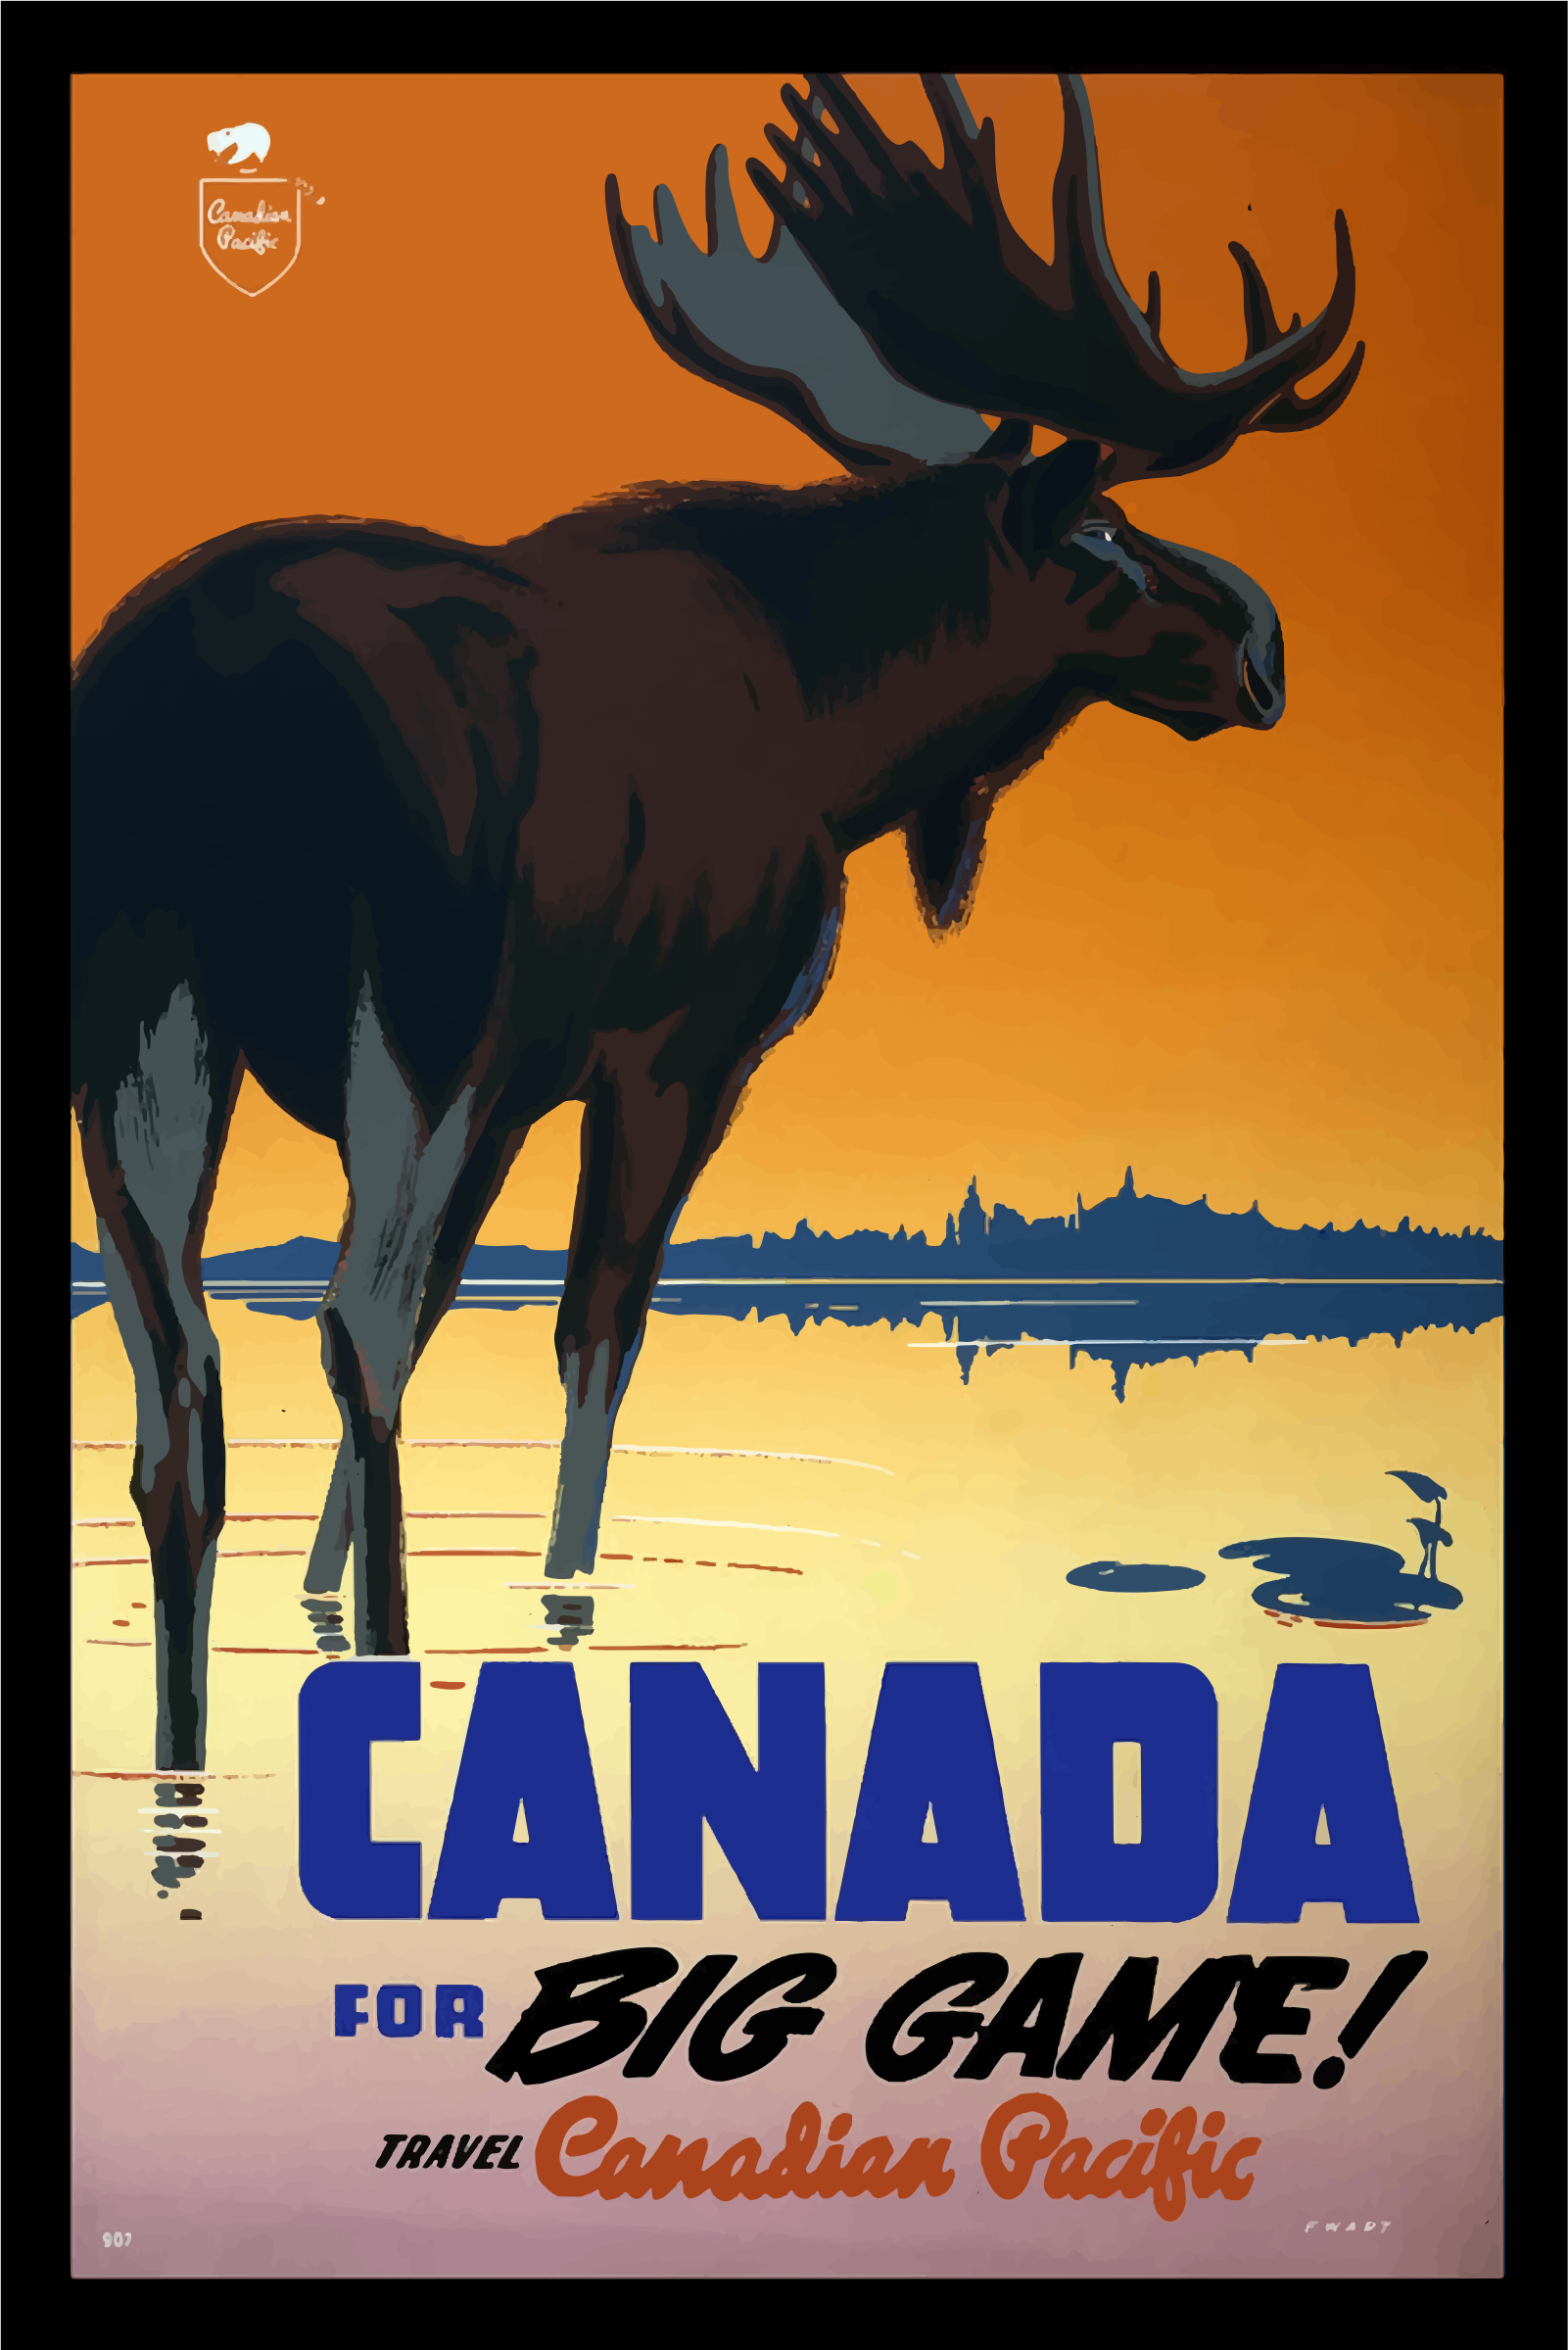 Vintage Travel Poster Canada by GDJ